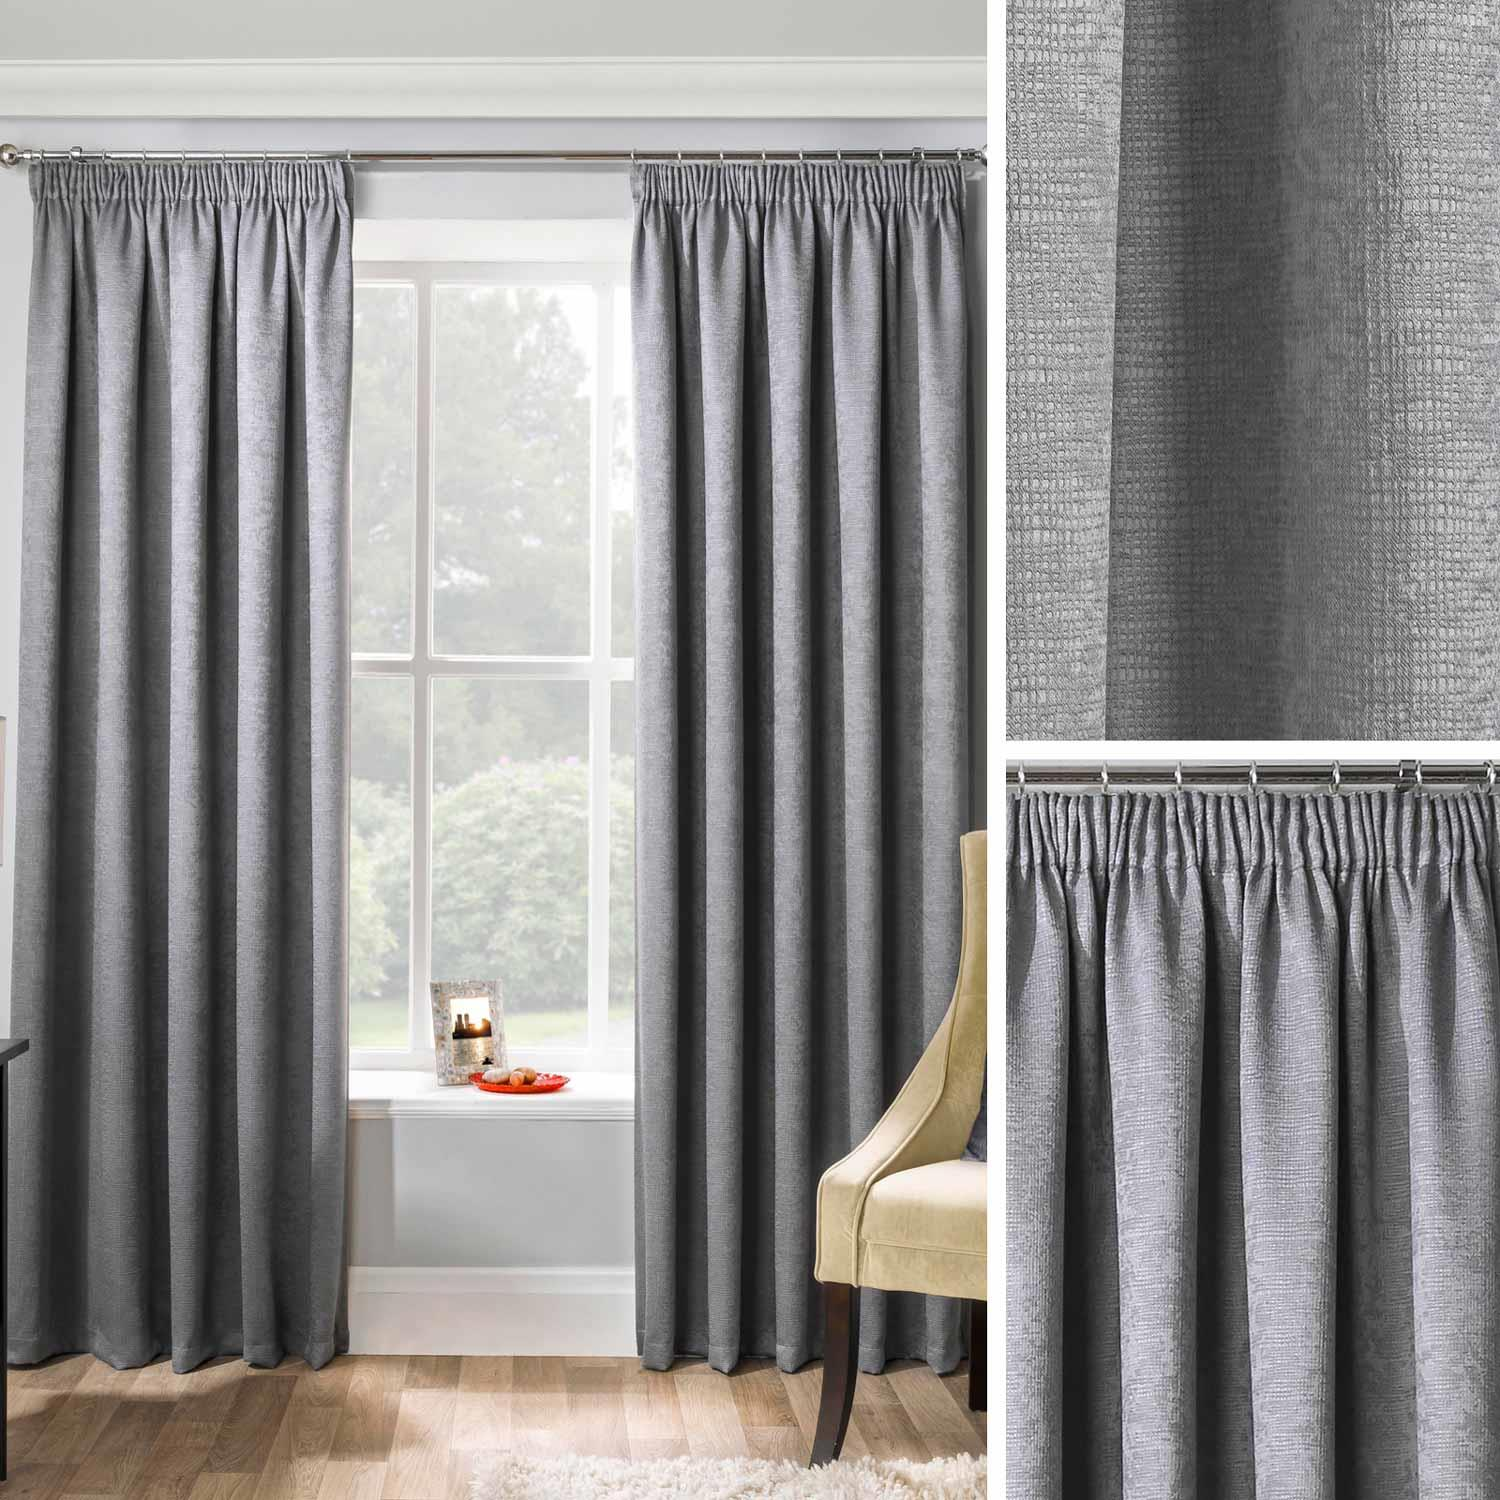 Tape Top Pencil Pleat Thermal BLACKOUT Plain Curtains to Block Sunlight